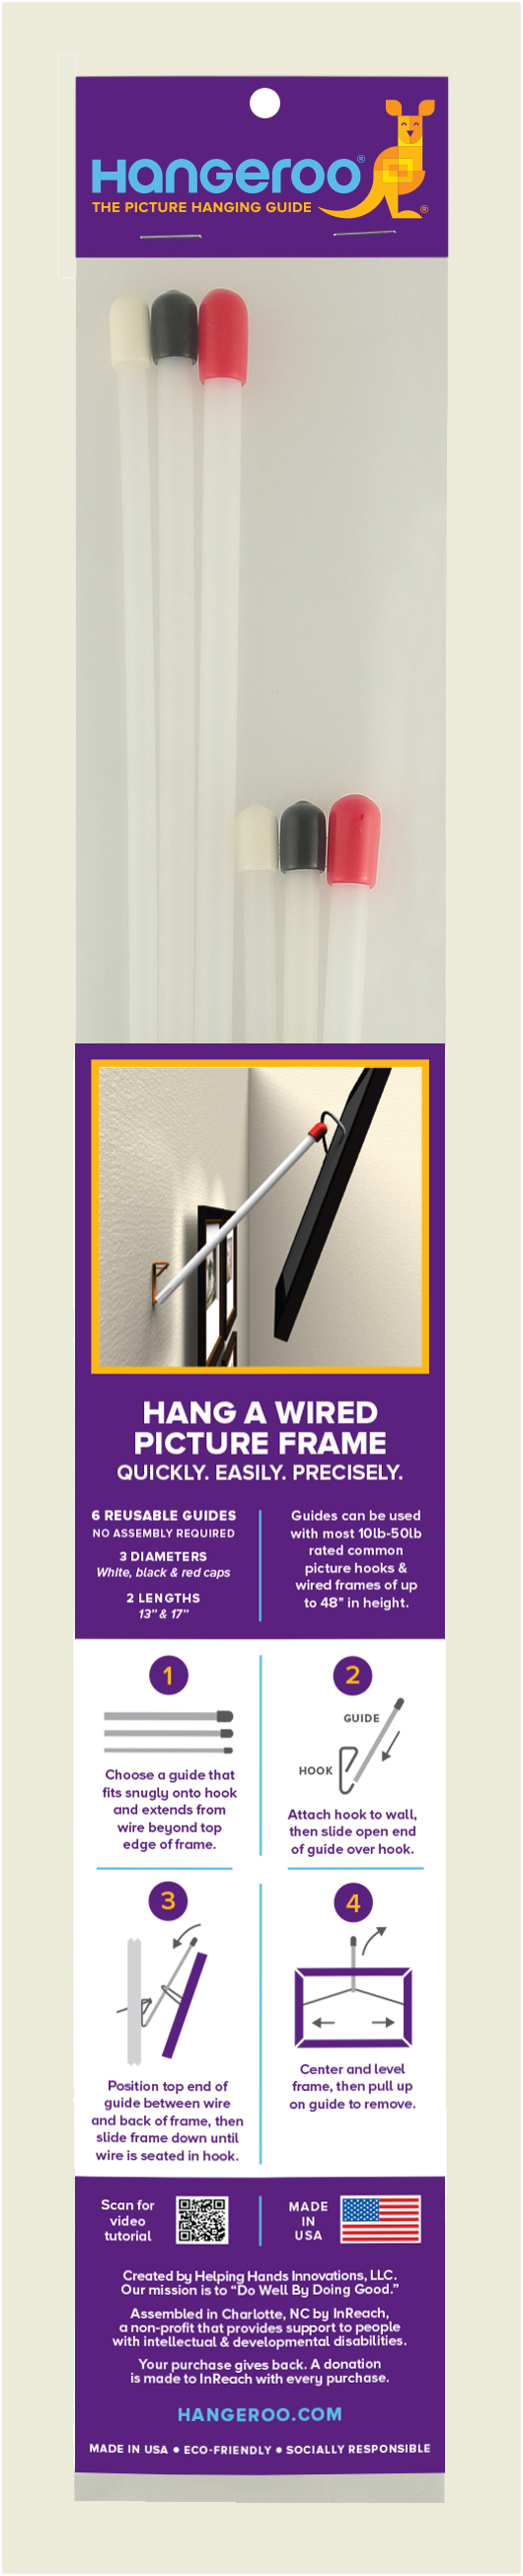 Easily hang wired artwork or mirrors with Hangeroo. No more fumbling to place the wire on a hook while holding the frame with one hand. Genius!